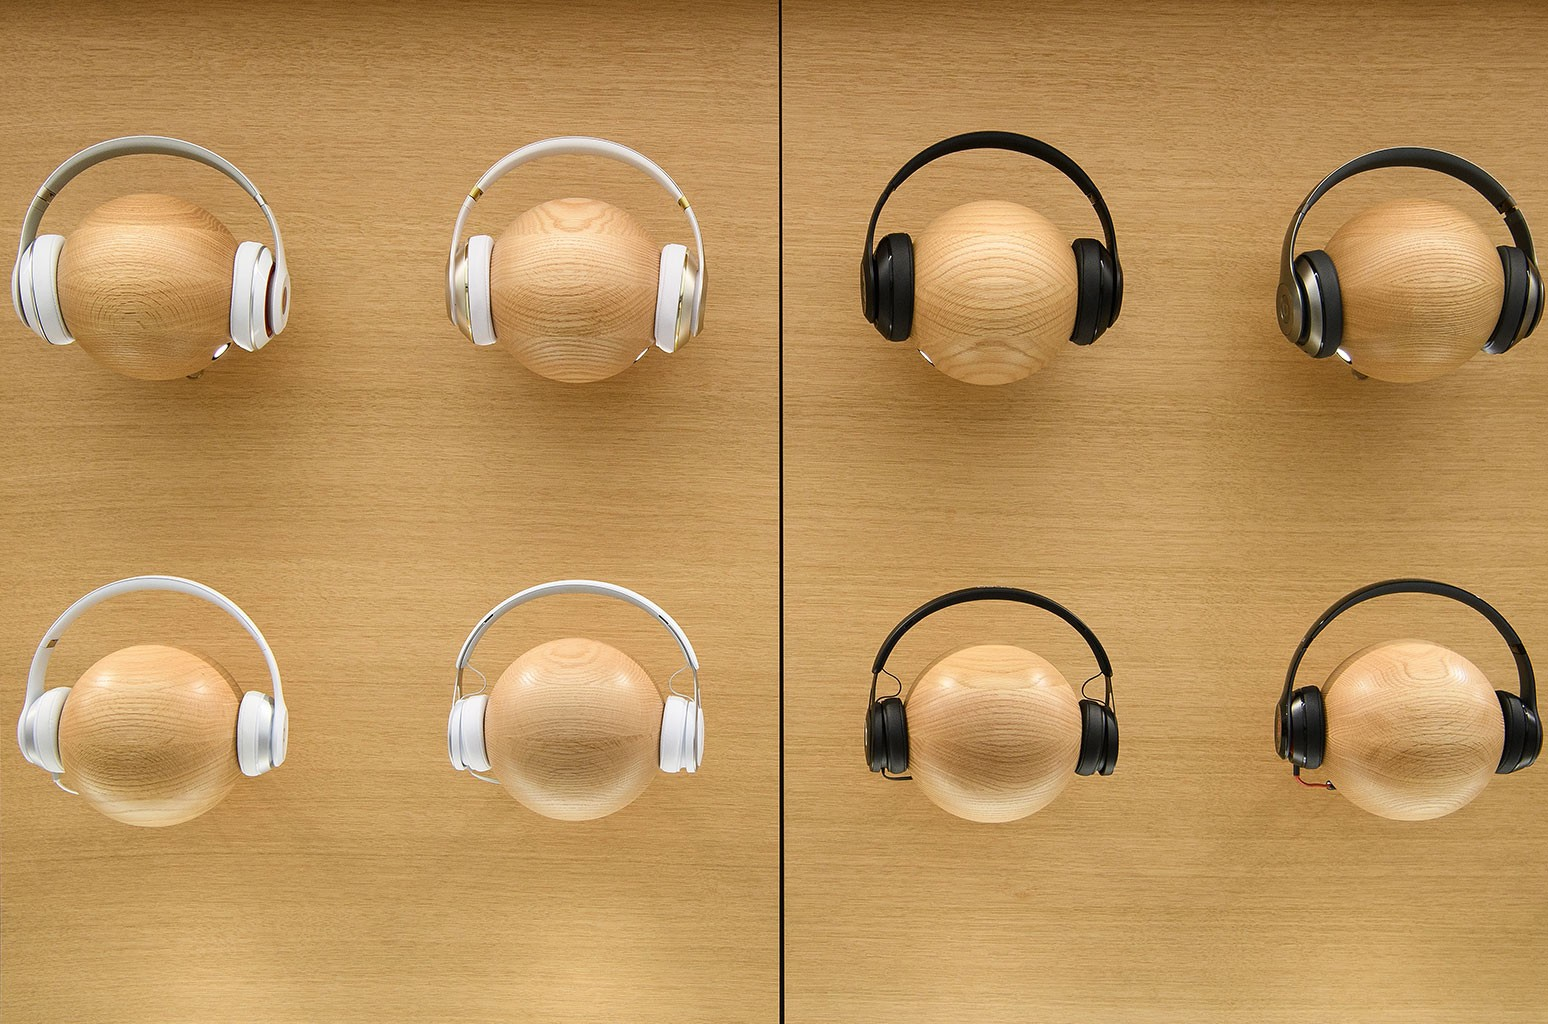 Billboard Buys: Beats by Dre Offering Latest Headphones for Under $200